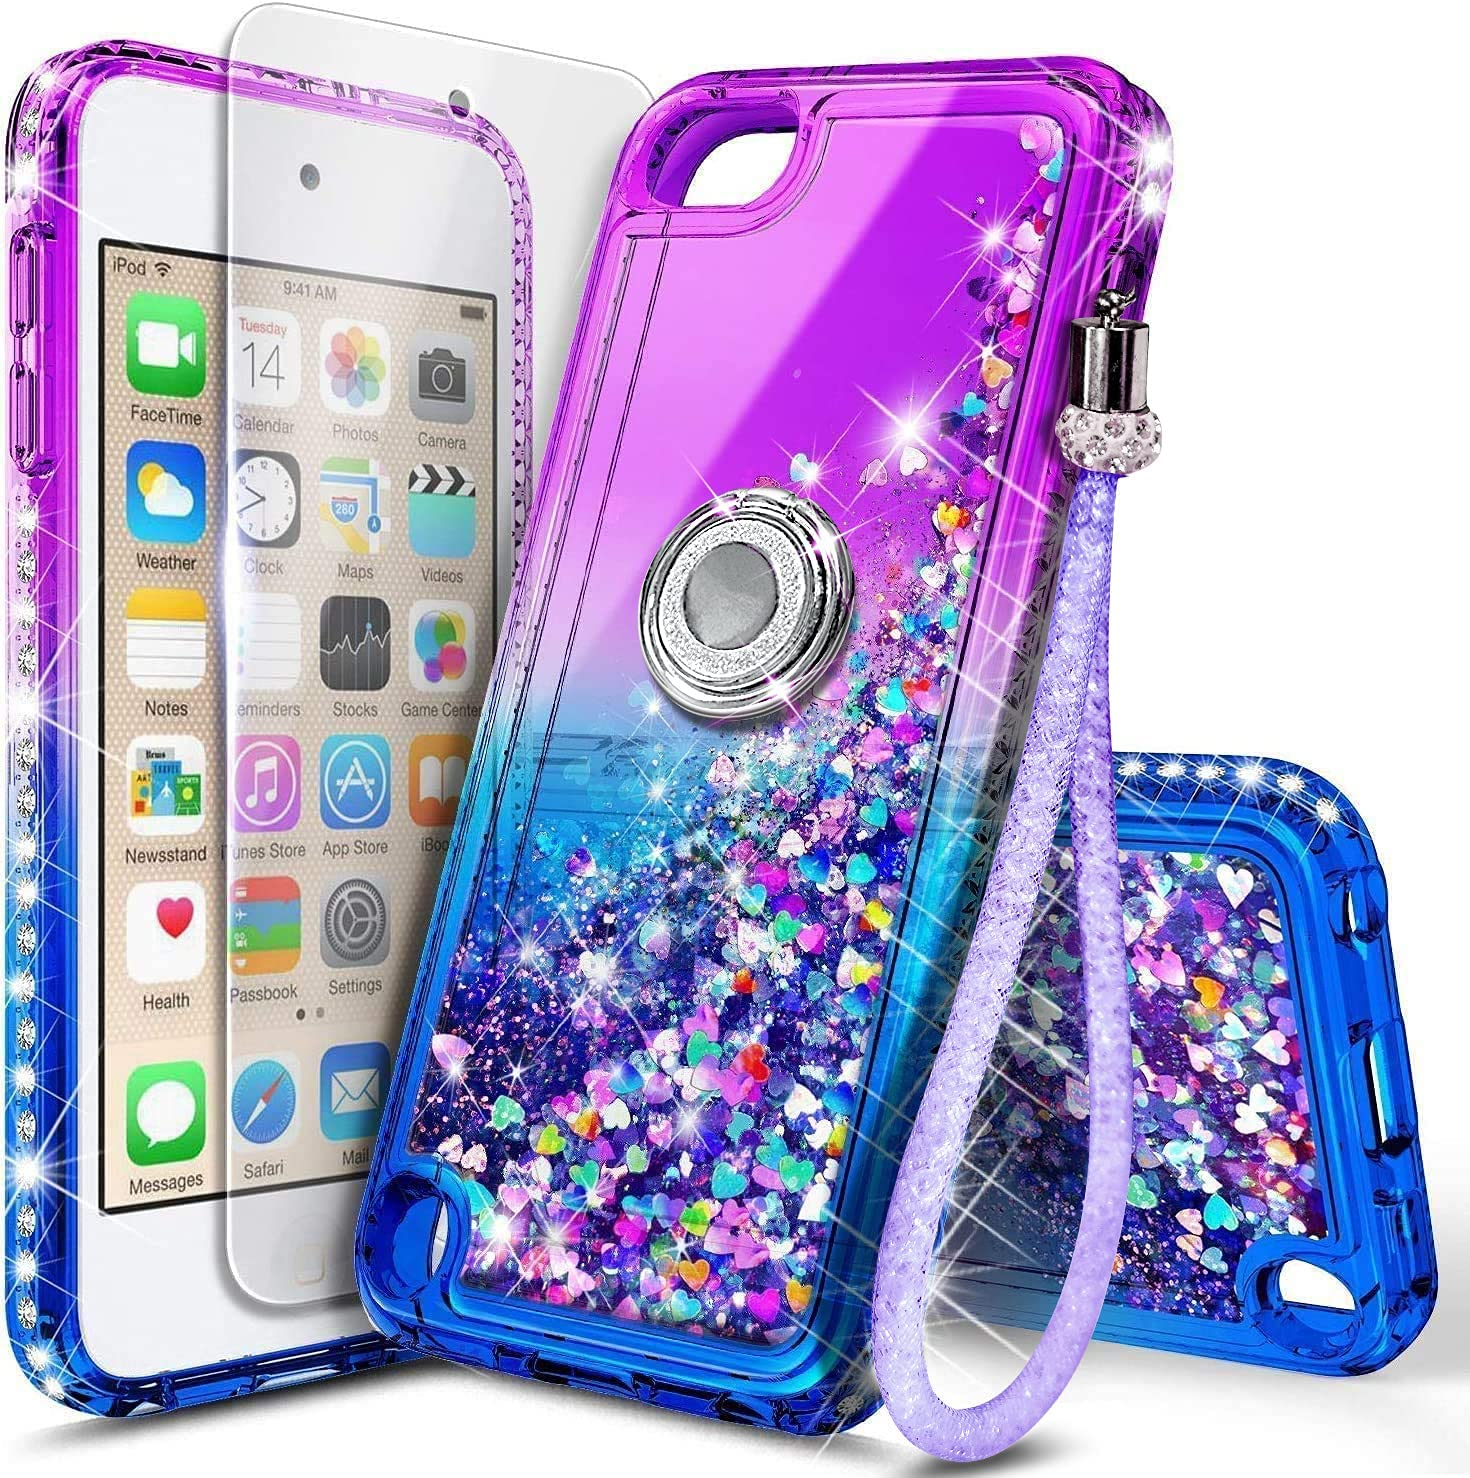 NGB iPod Touch 7 Case, iPod Touch 6/5 Case with Tempered Glass Screen Protector and Ring Holder for Girls Women Kids, Glitter Liquid Cute Case for Apple iPod Touch 7th/6th/5th Generation (Purple/Blue)